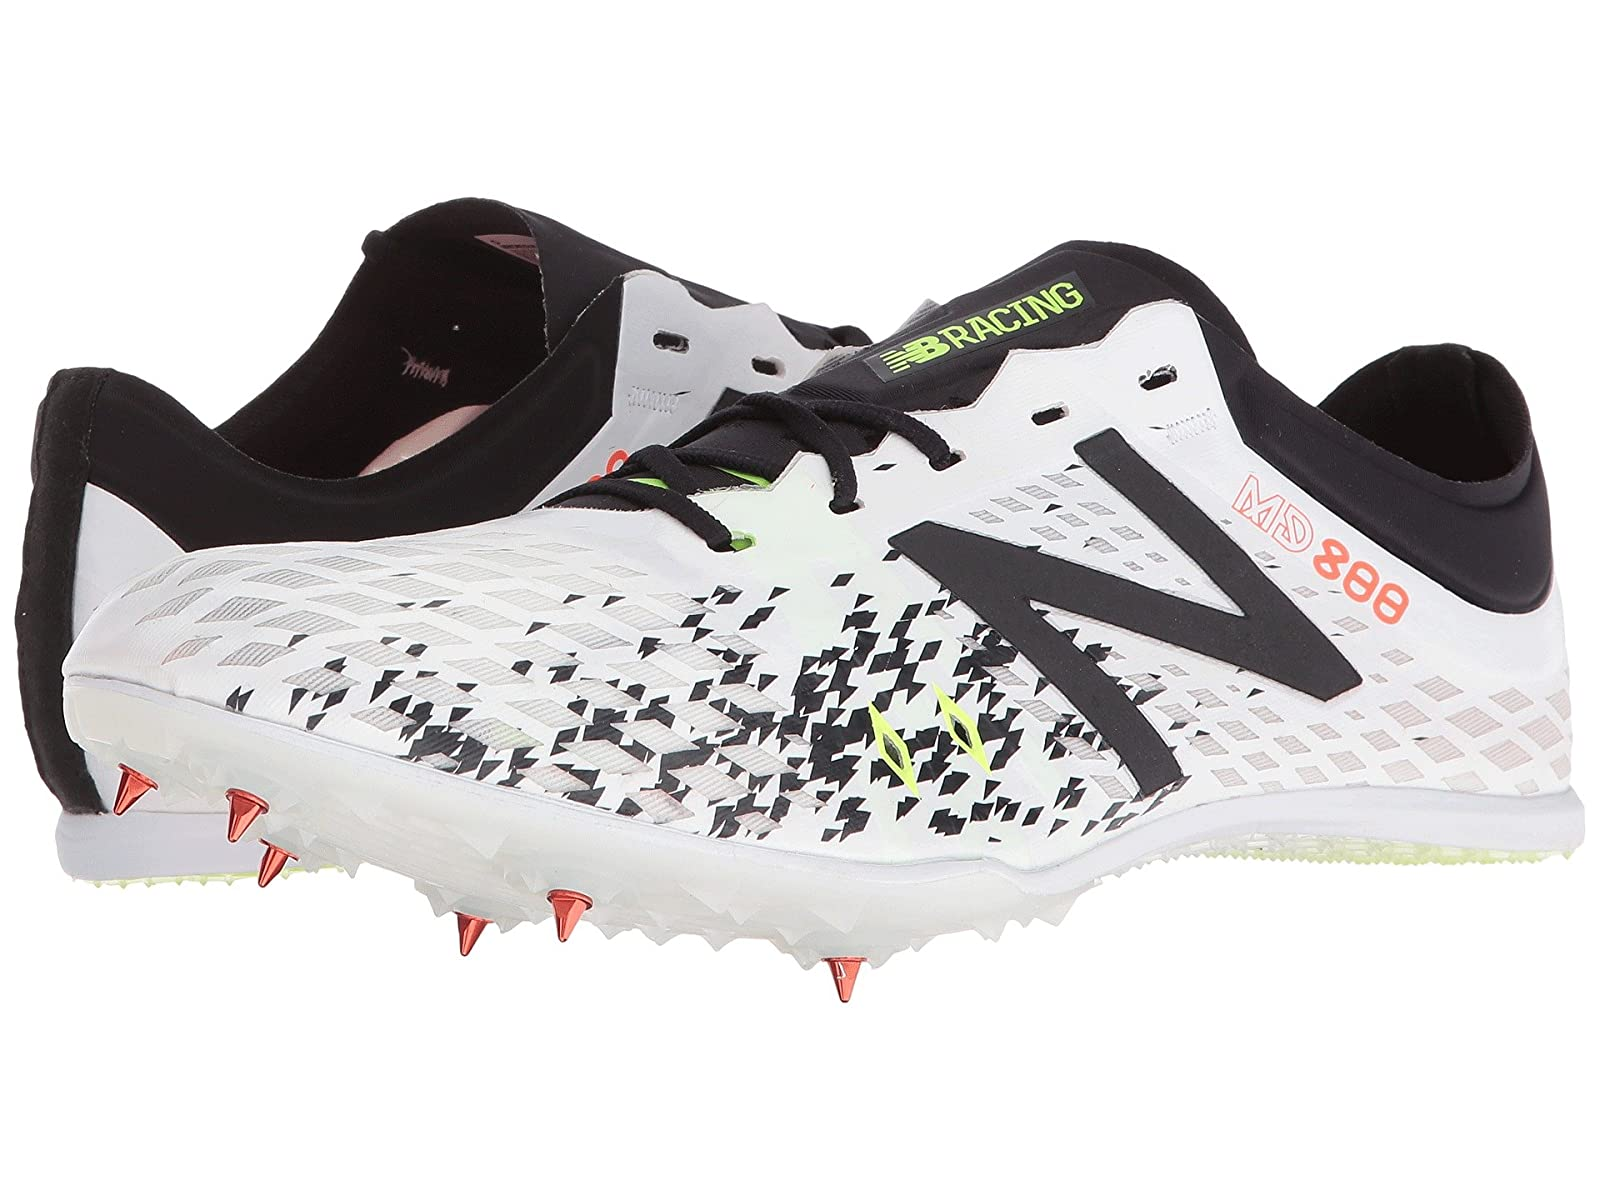 New Balance MD800v5 Middle Distance SpikeCheap and distinctive eye-catching shoes